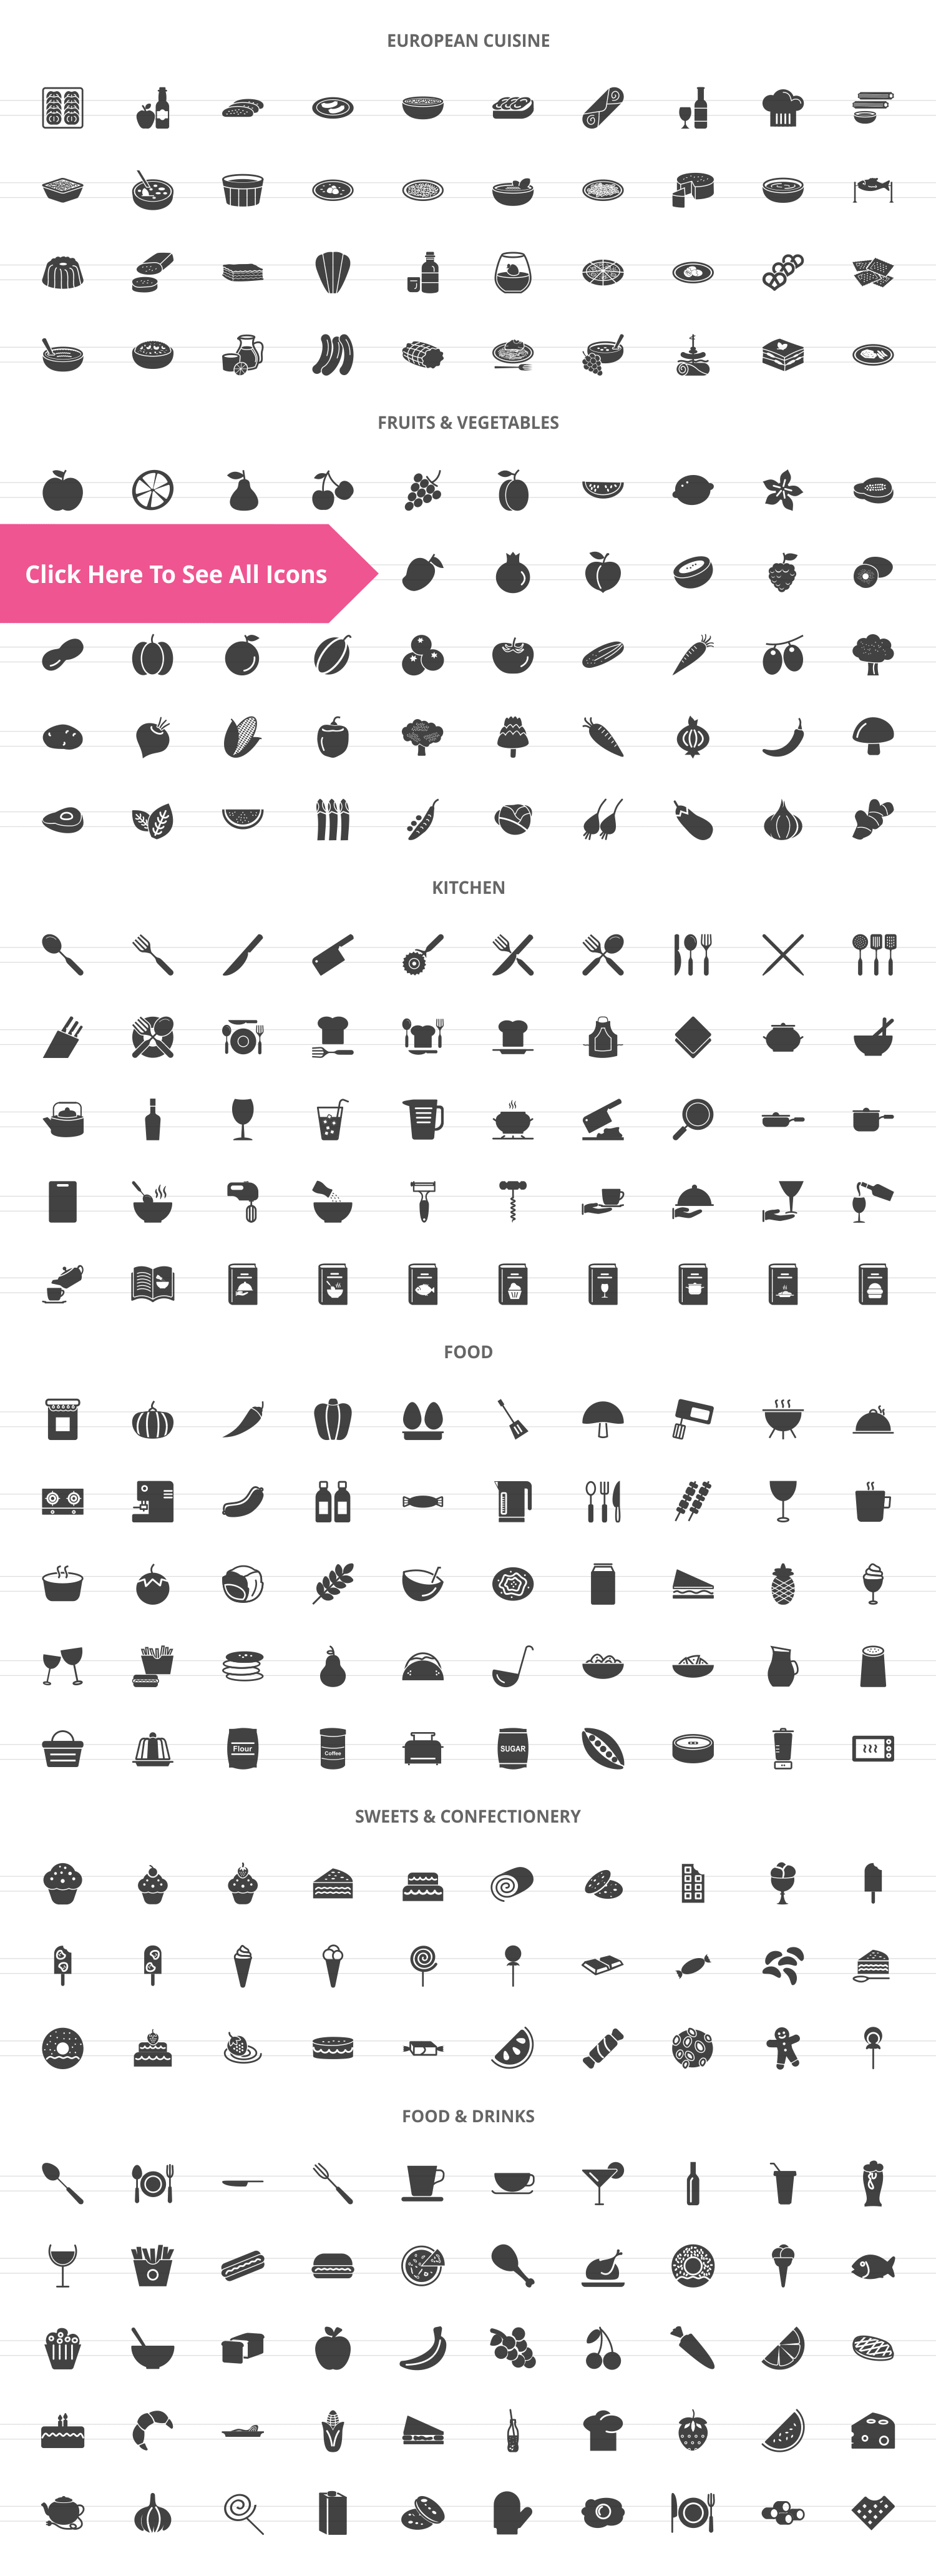 270 Food & Drinks General Glyph Icons example image 2